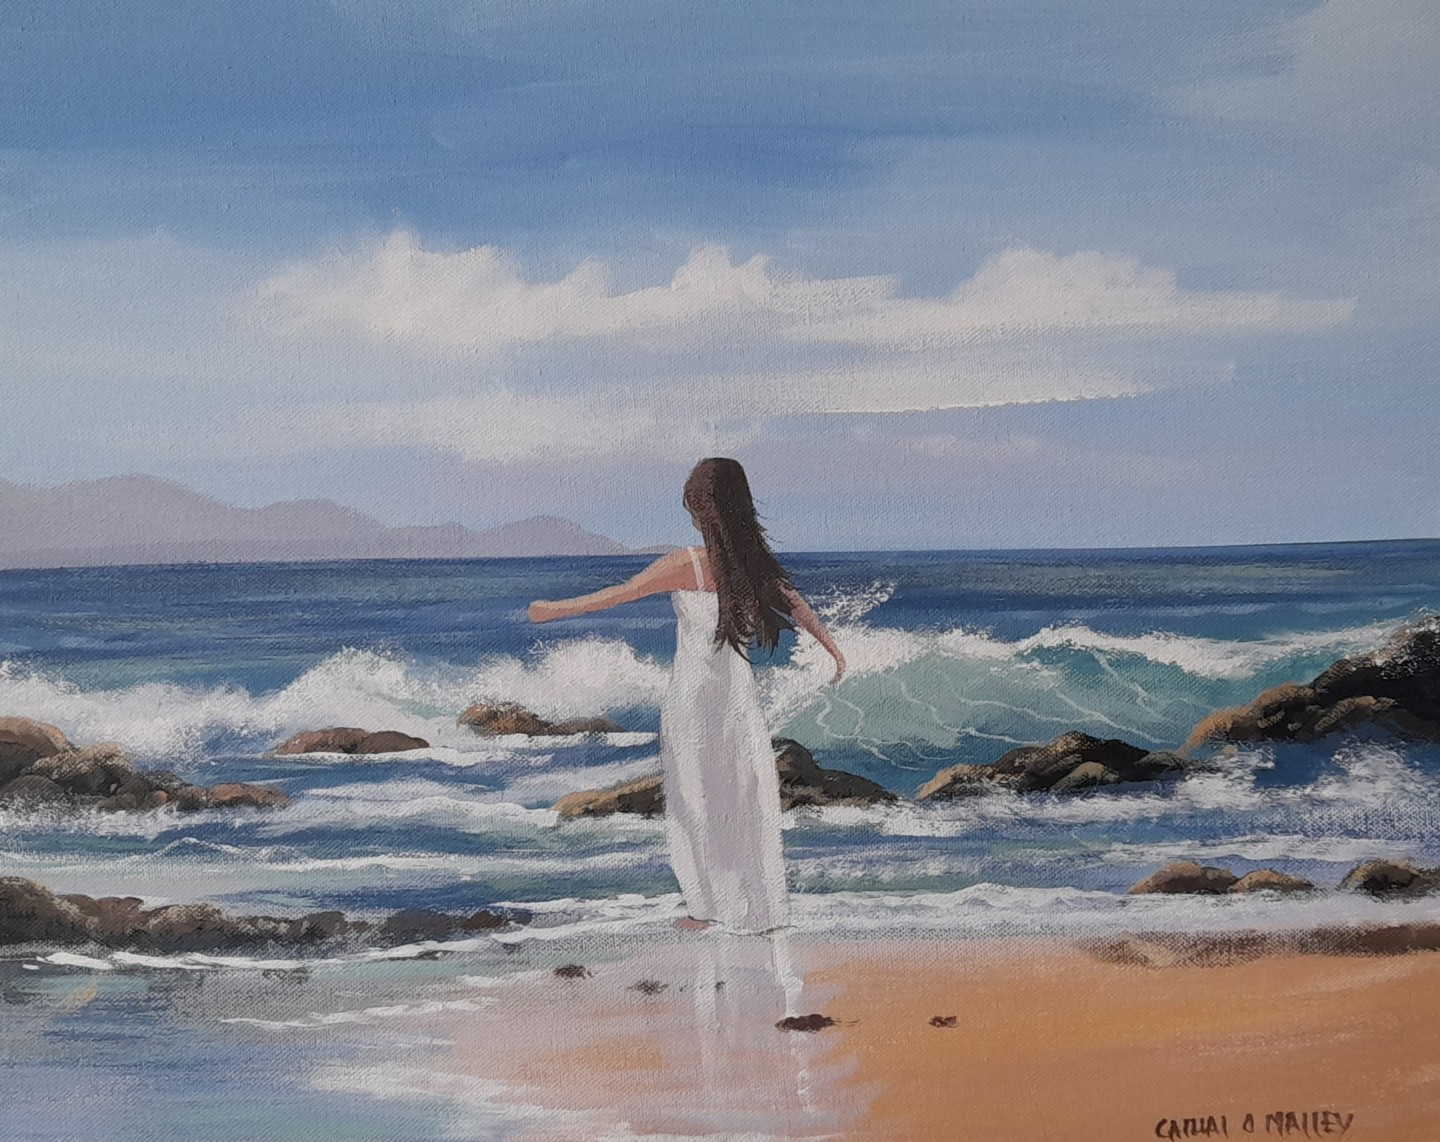 Cathal O Malley - Summer breeze